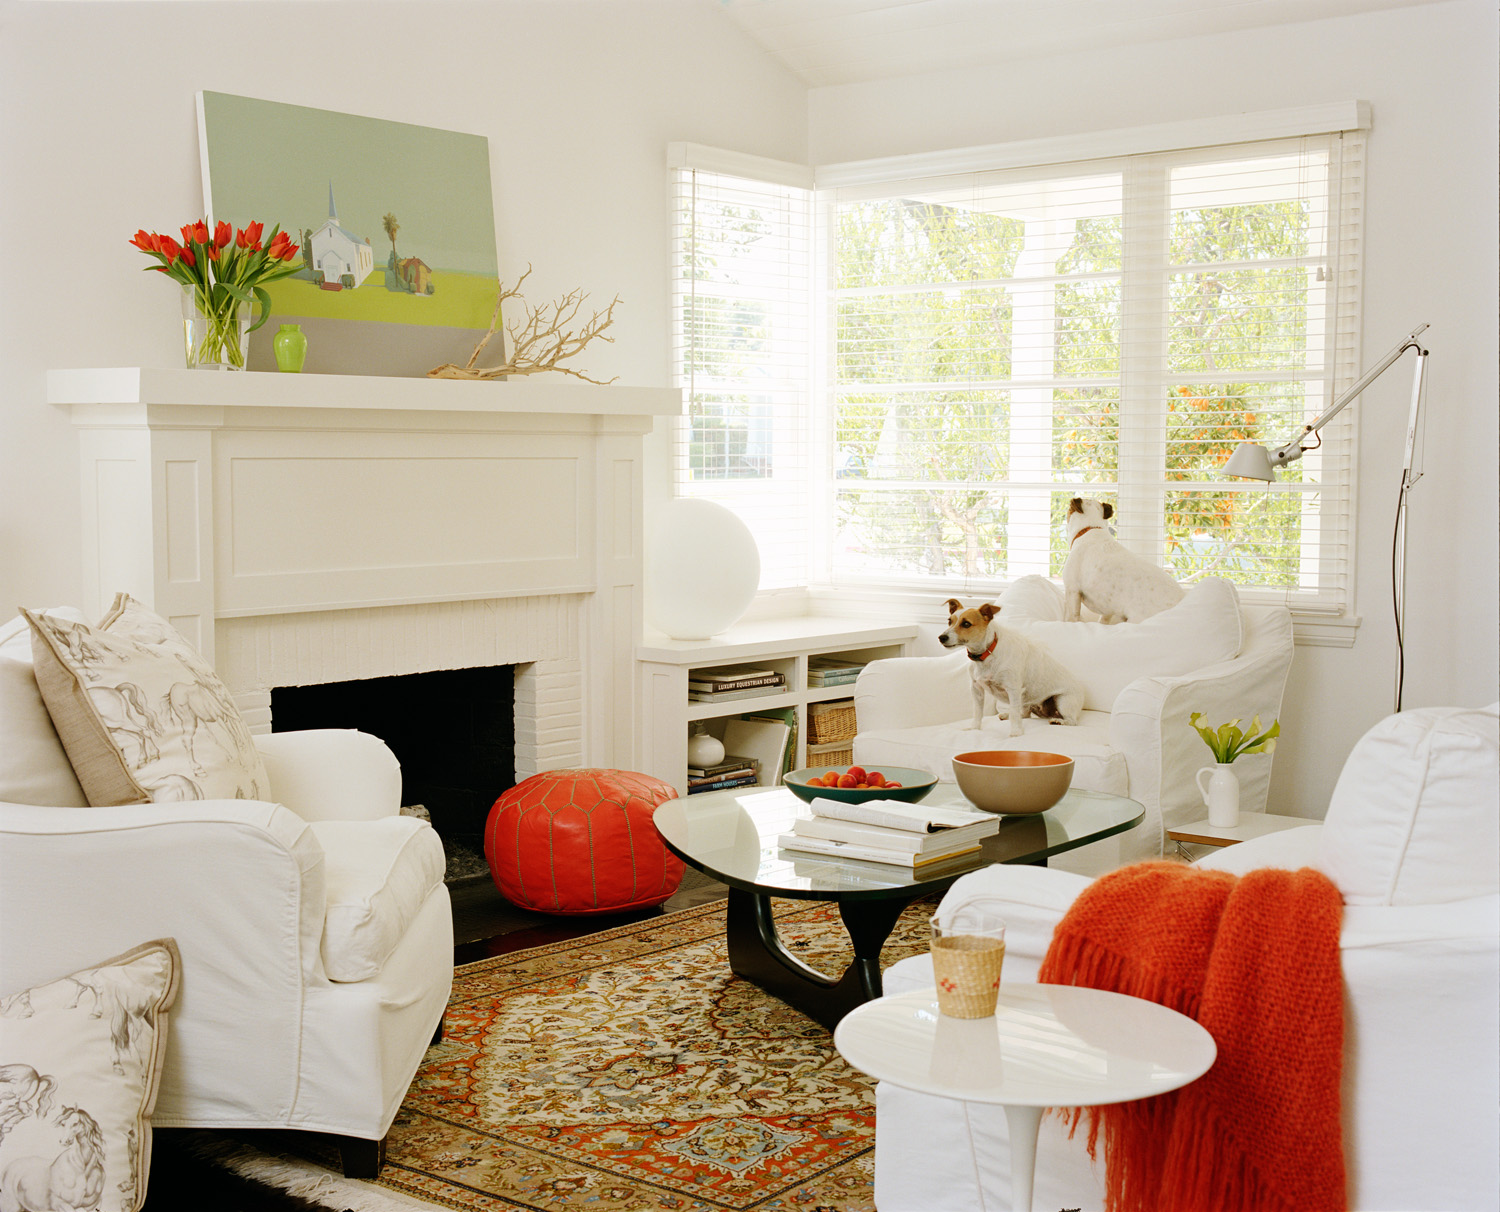 Awesome My Froggy Stuff Living Room Model - Living Room Design Ideas ...